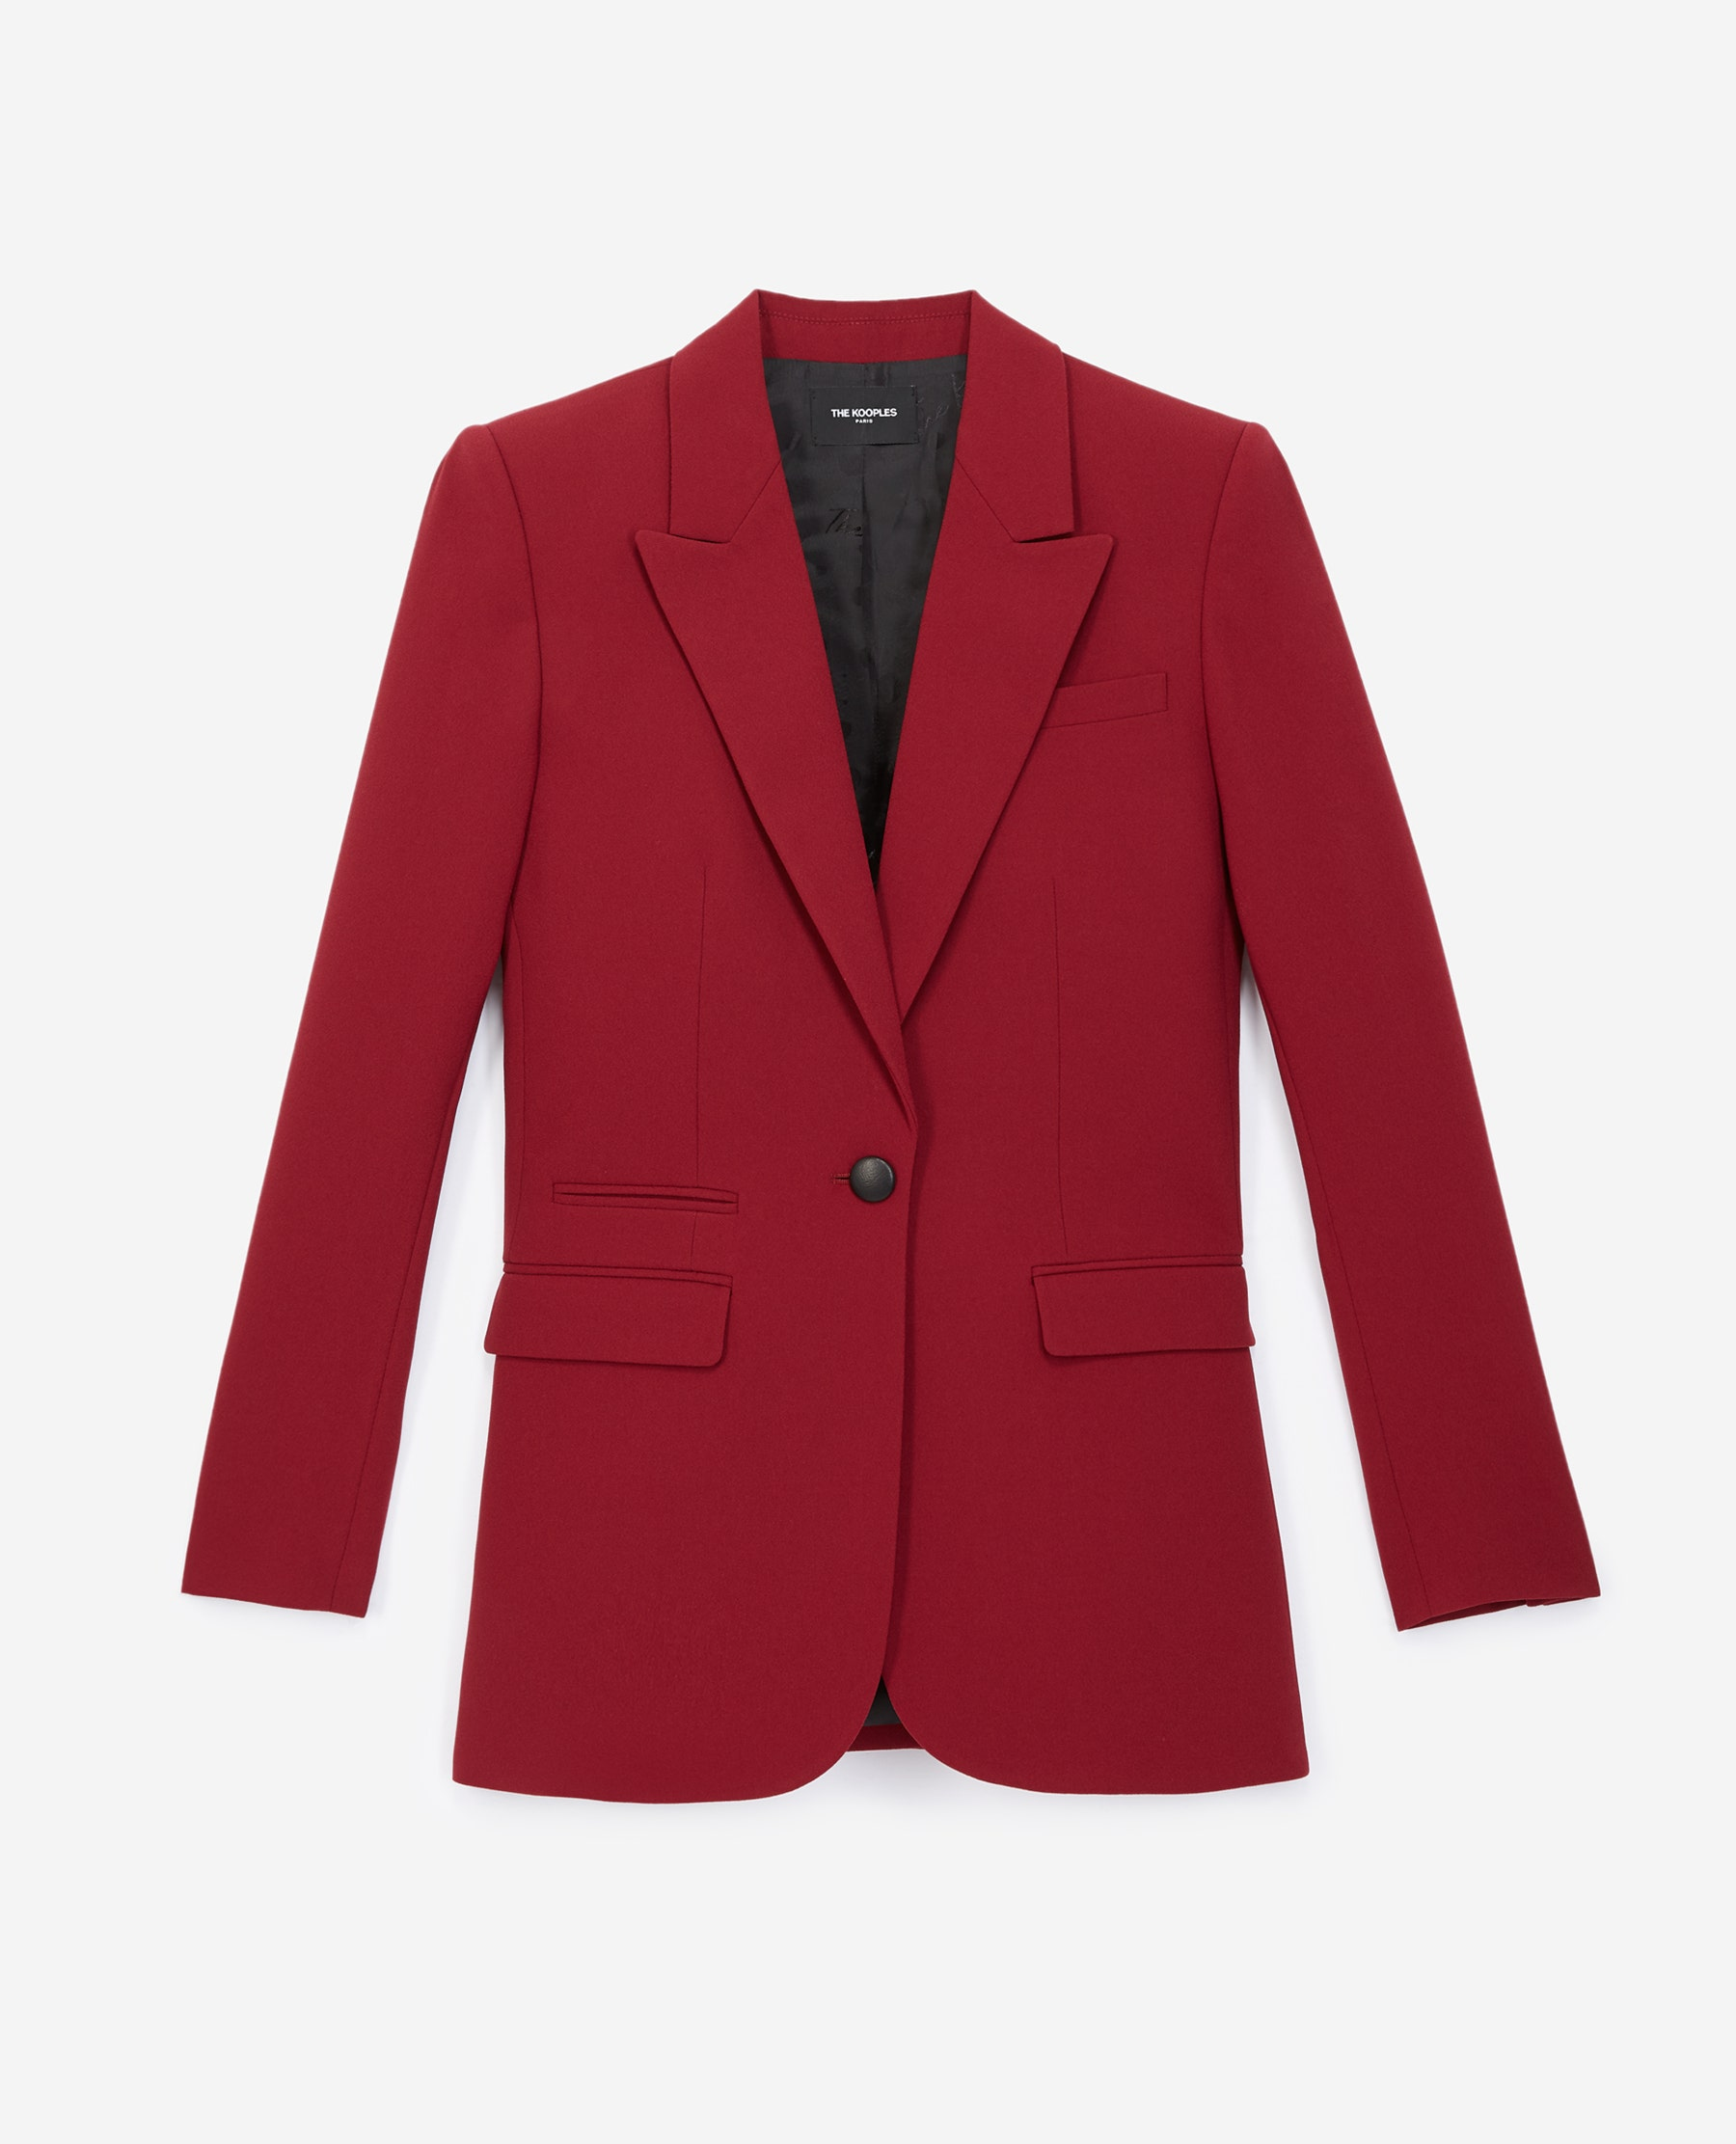 Veste costume crêpe bordeaux - The Kooples - Modalova